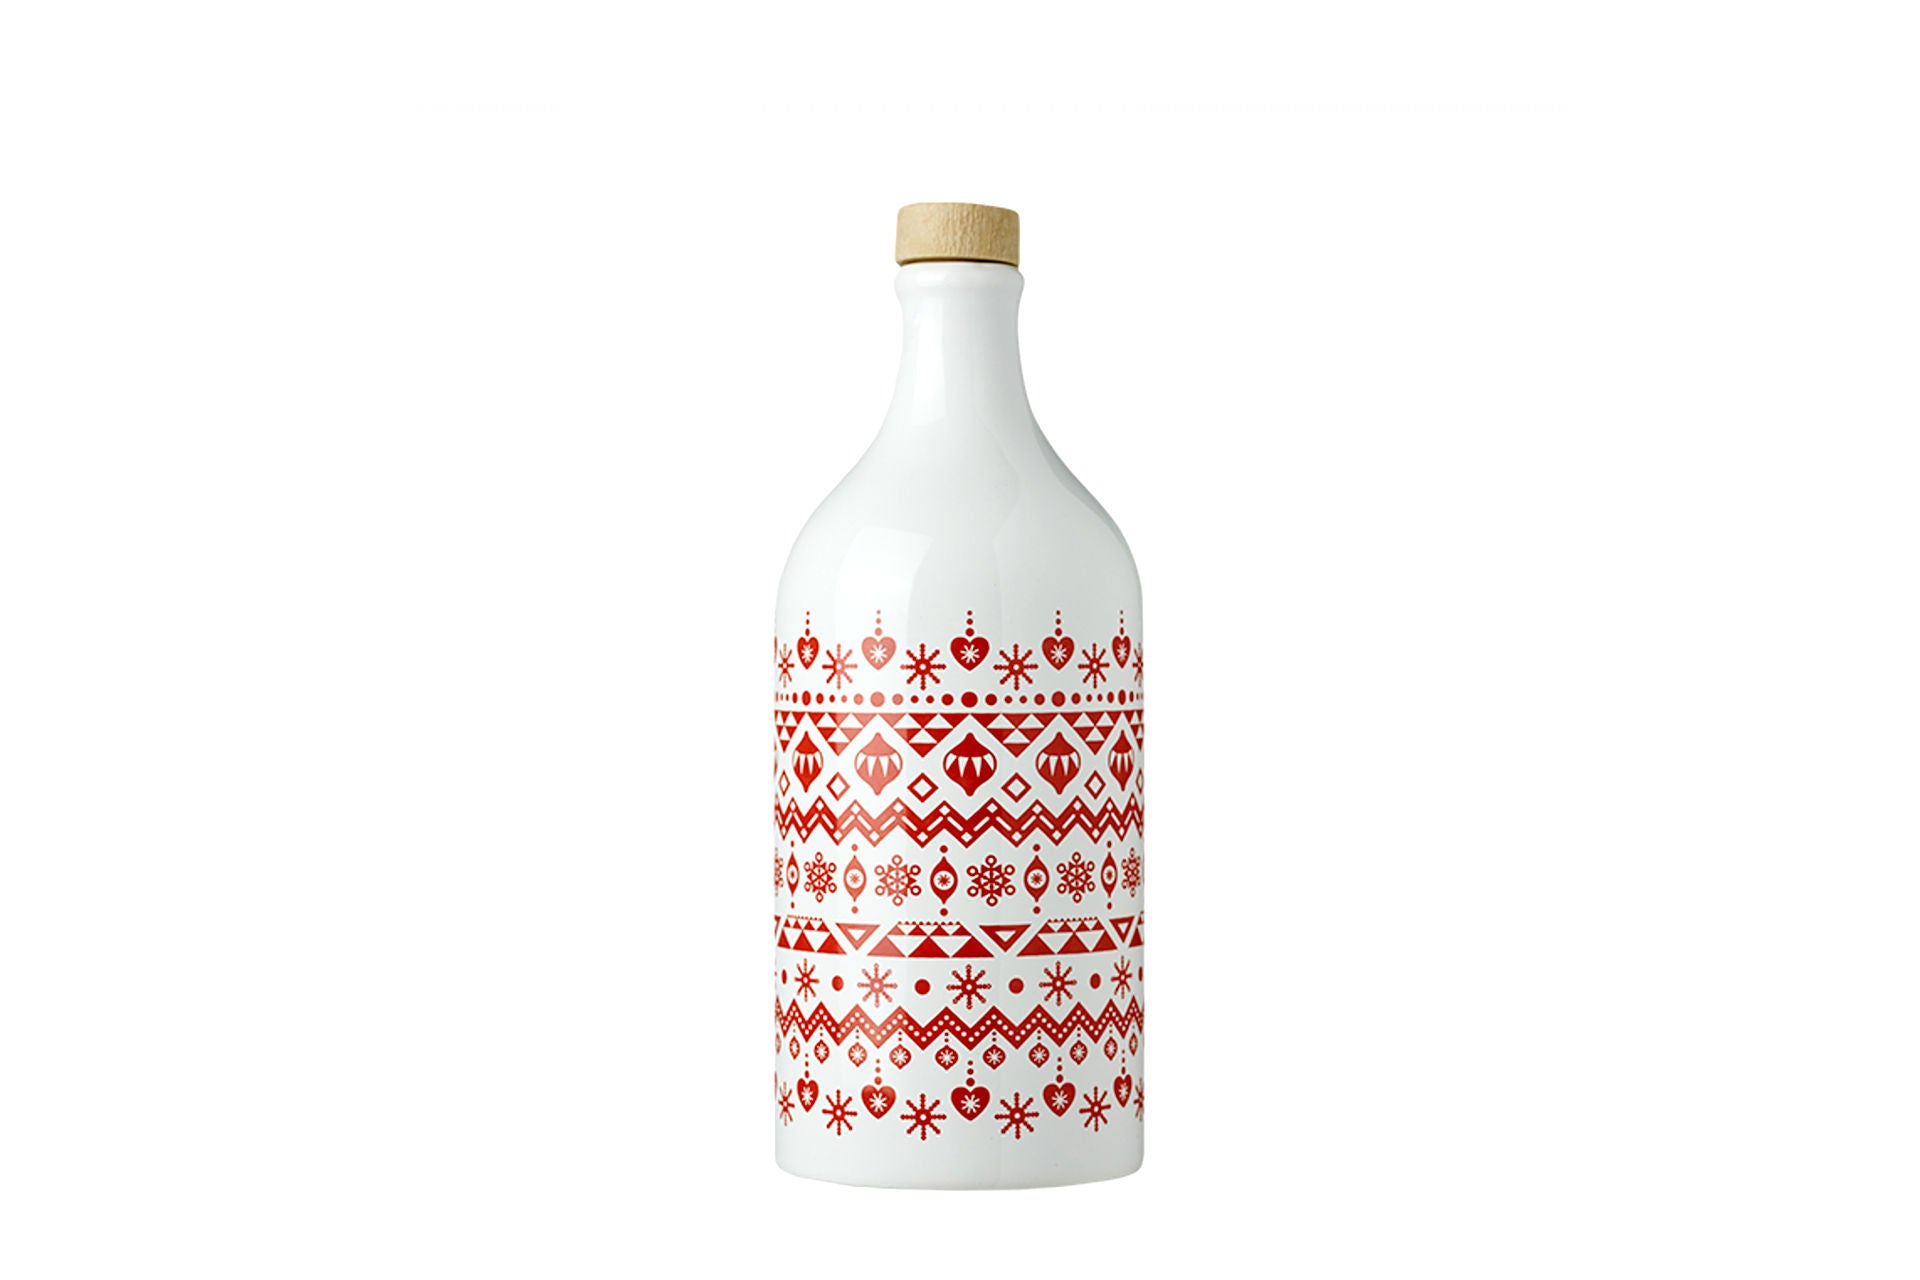 Limited Edition Knitting Collection Intense Fruity Extra Virgin Olive Oil in Handmade Ceramic Bottle 500ml